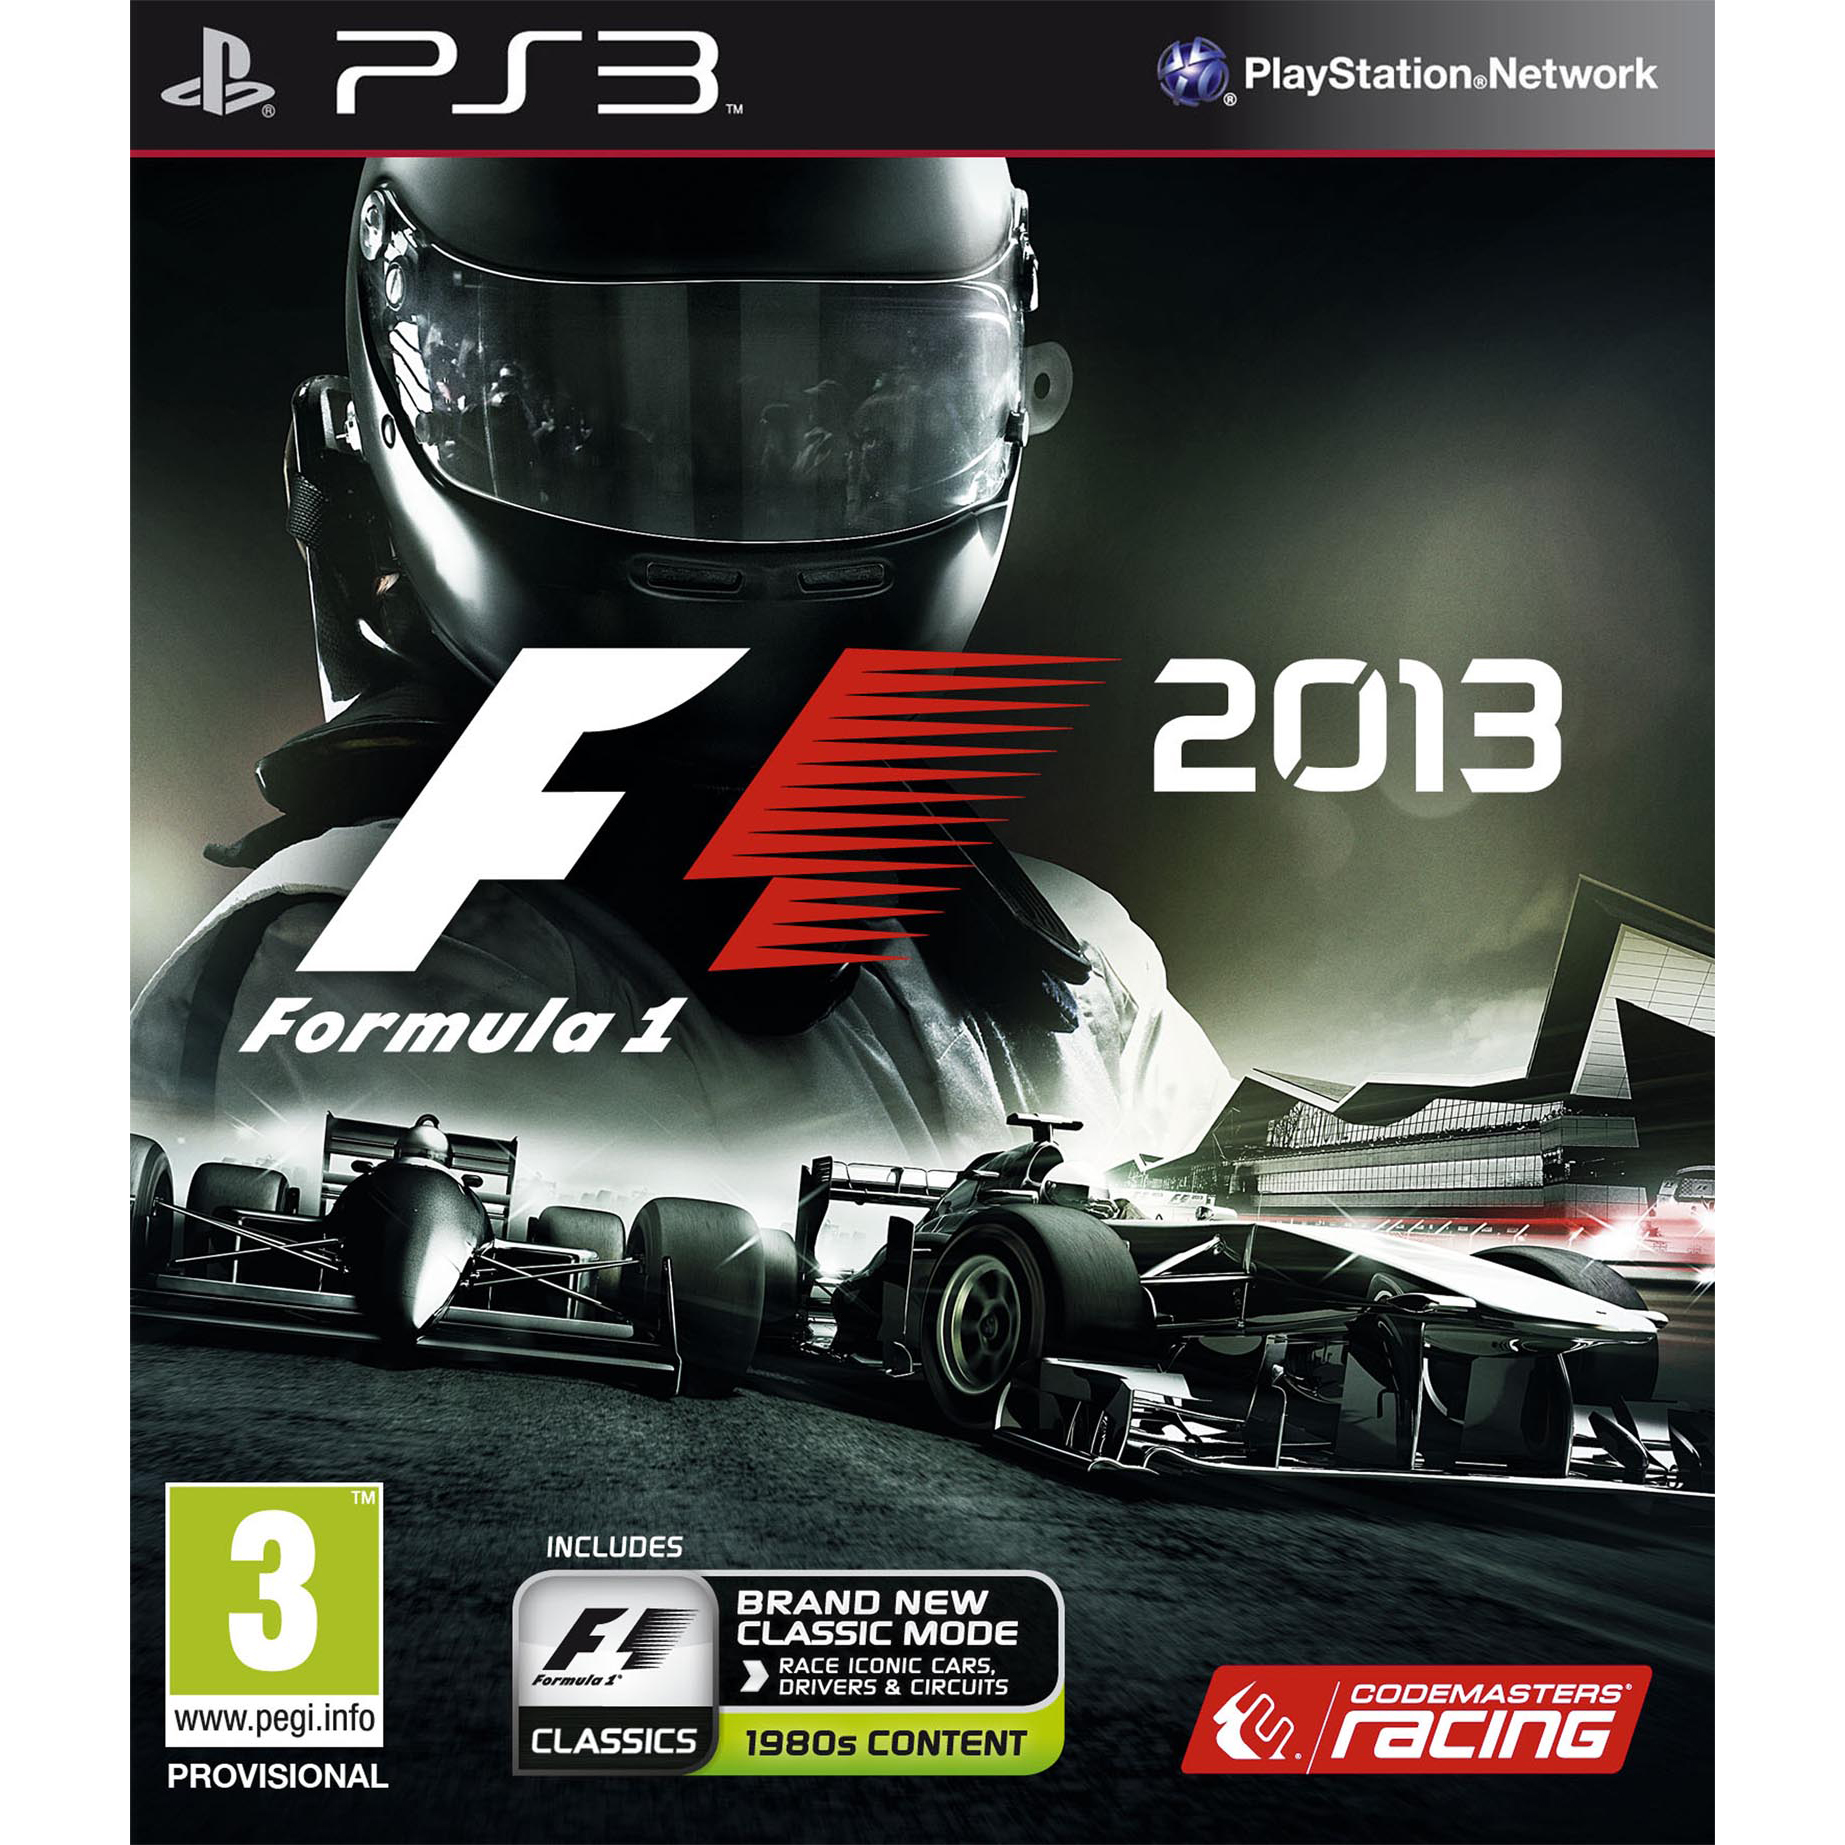 Formula One Video Game 2013 - PS3